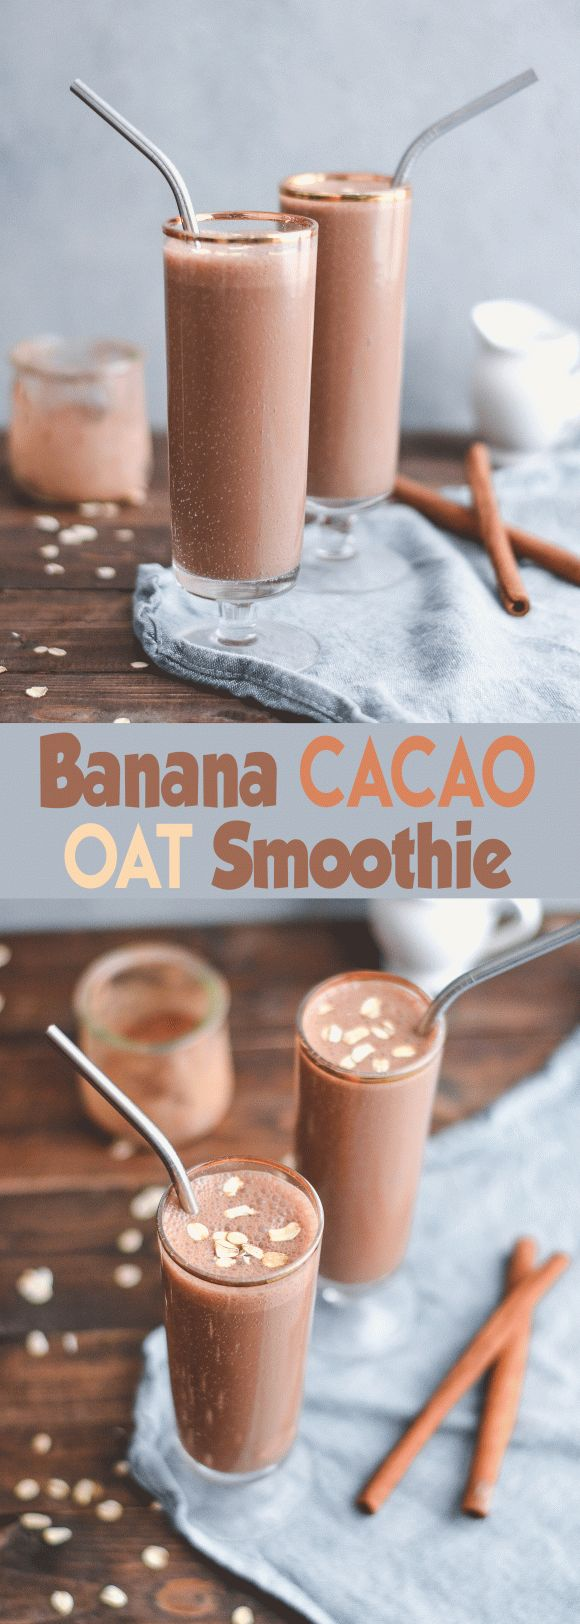 Whether you're looking for a quick breakfast or a filling afternoon snack, this Banana Cacao Oat Smoothie is the perfect healthy sip!